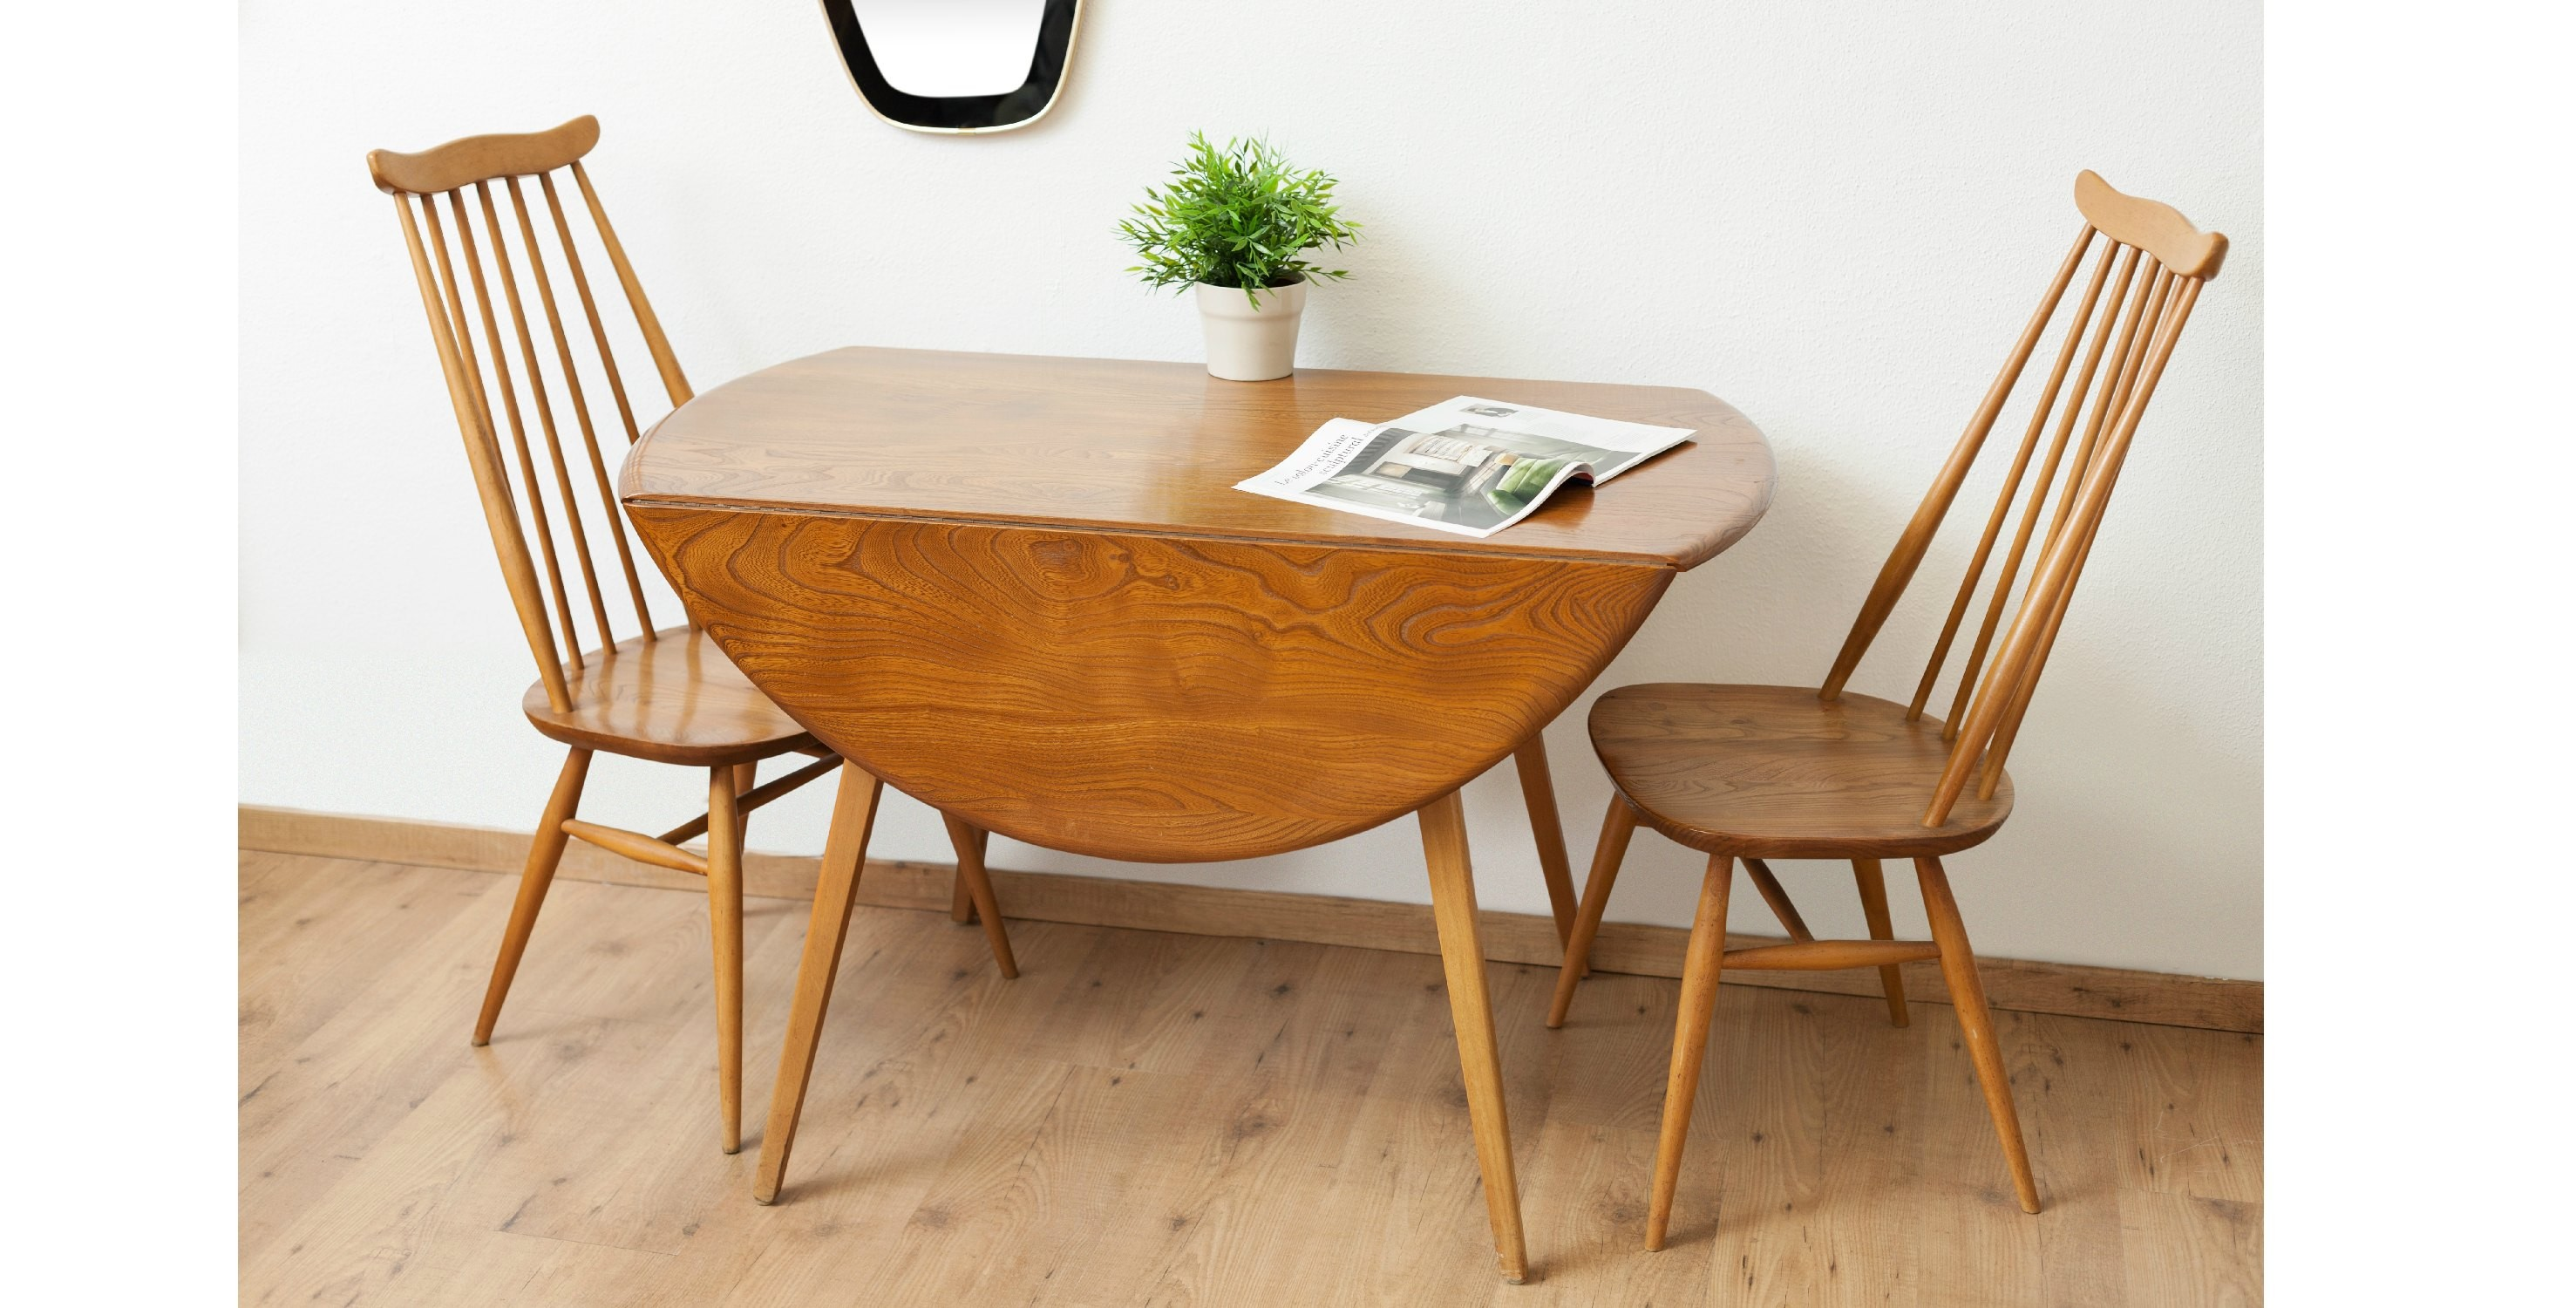 Table manger pliante ercol 1960 vendue room 30 - Table a manger pliante ...